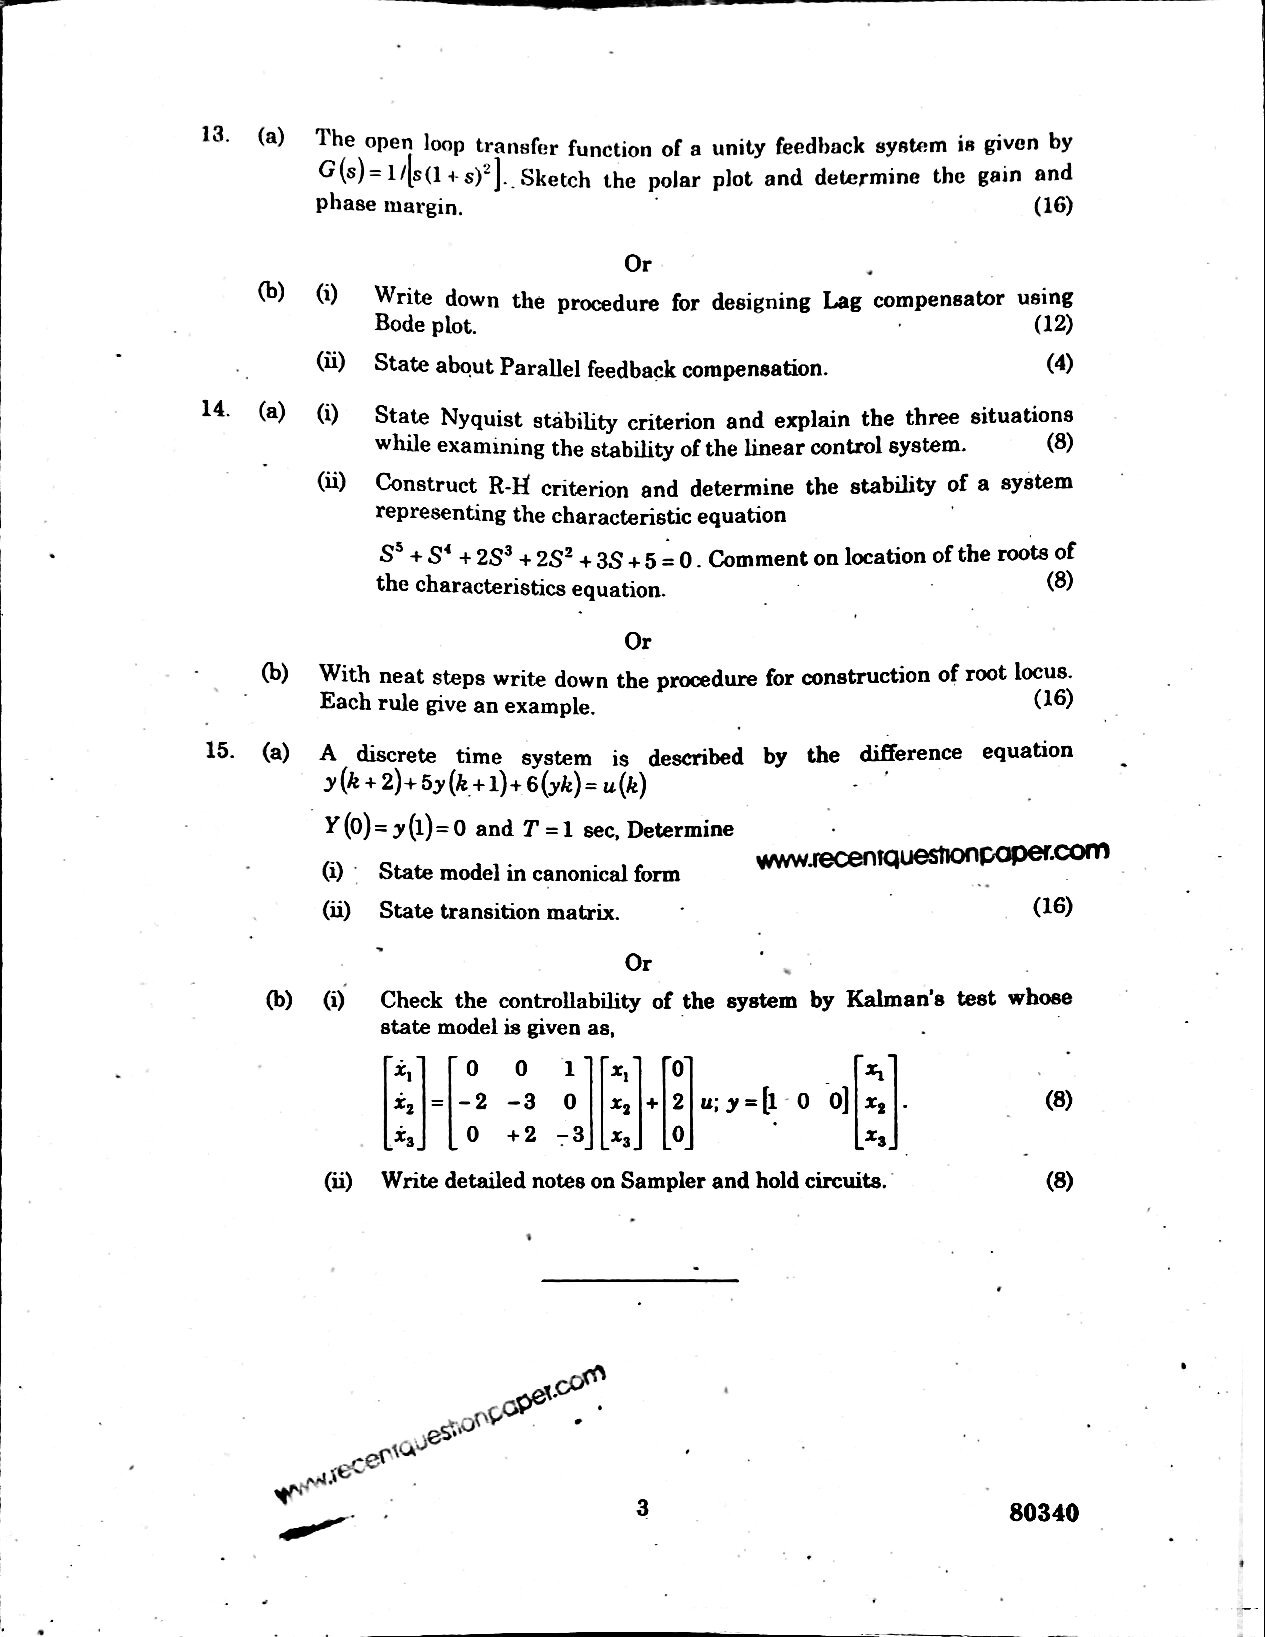 Ec6405 Control System Engineering Recent Question Paper